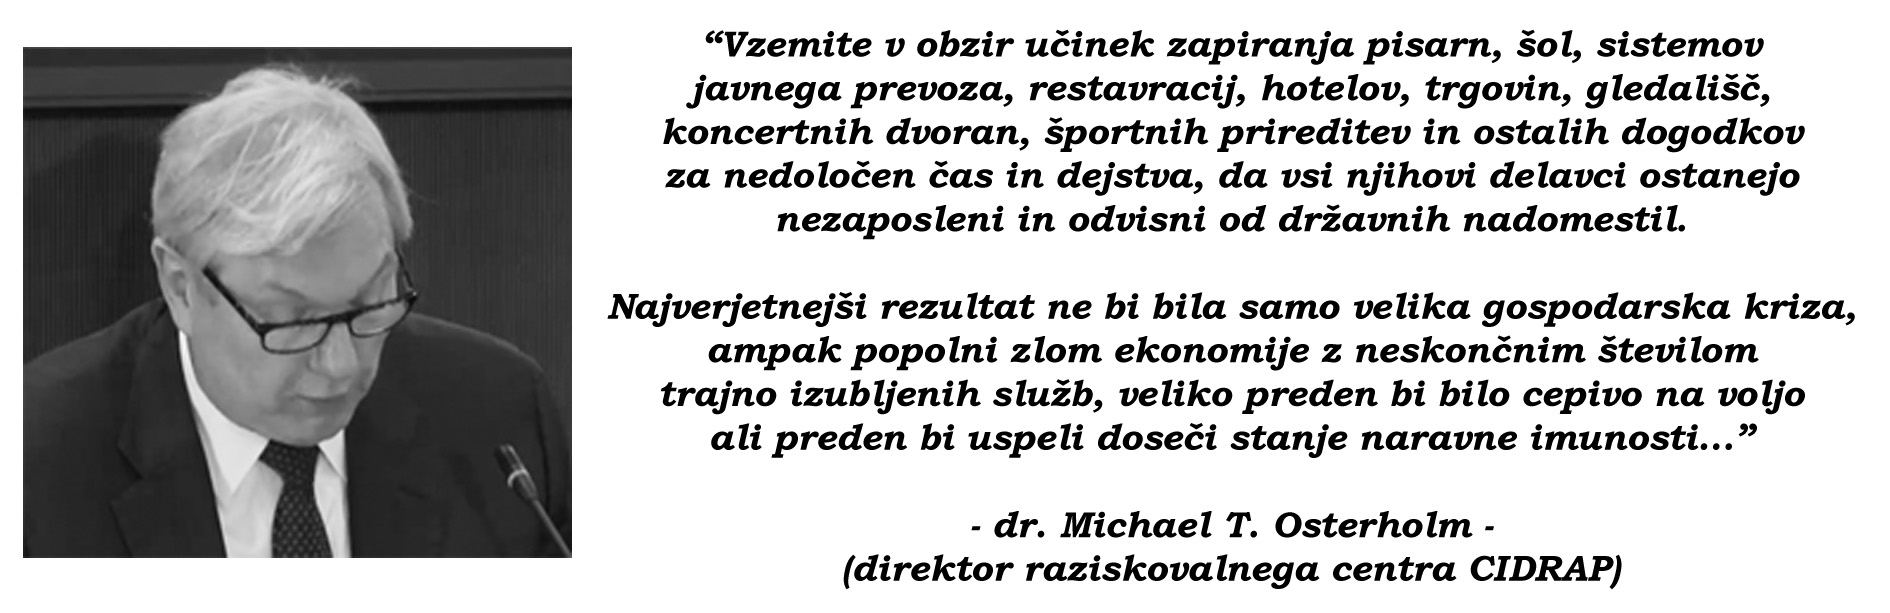 osterholm quote 1